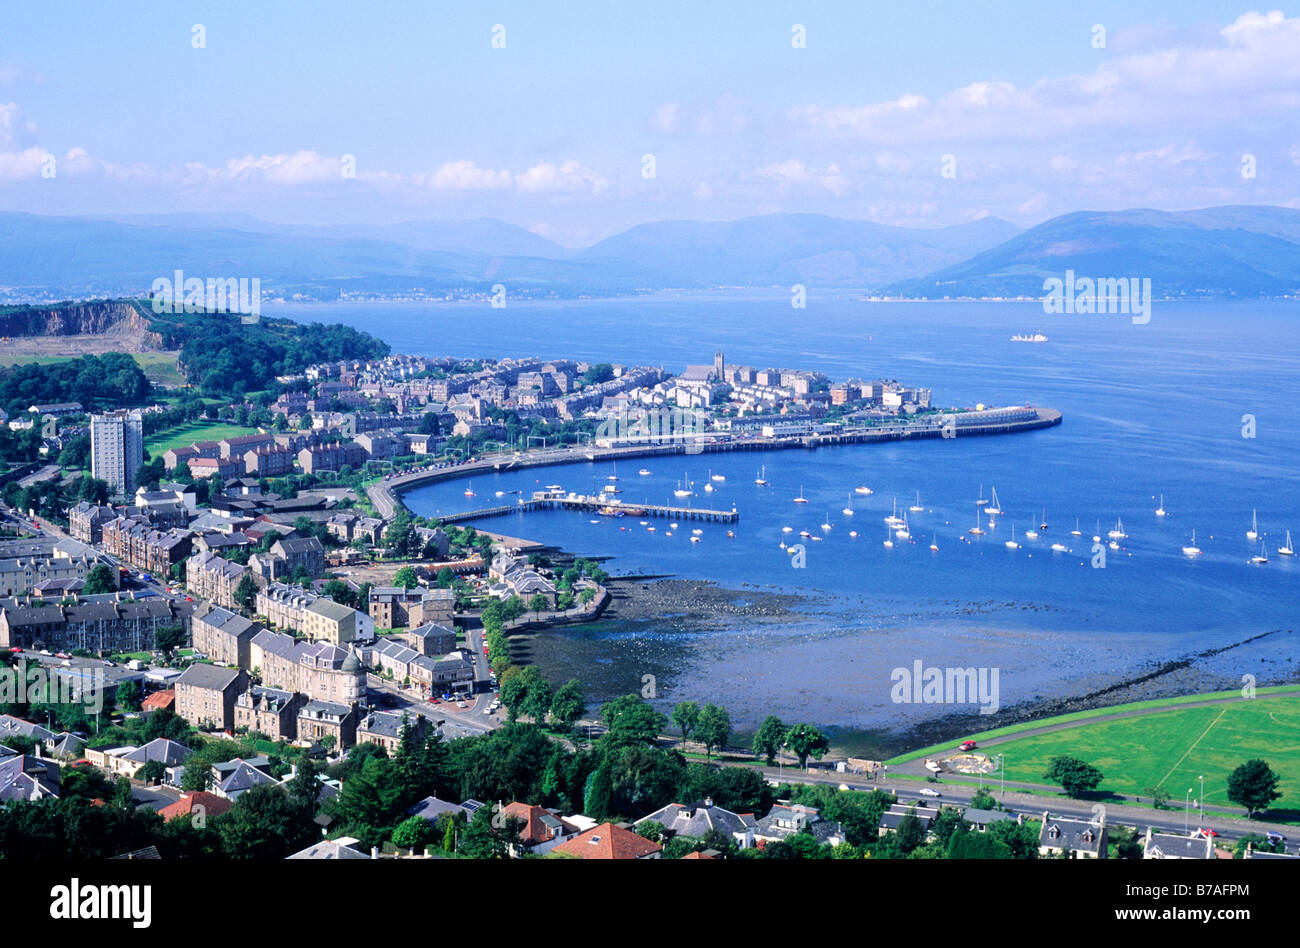 Gourock and Firth of Clyde, Scotland UK Clydeside Scottish town port harbour UK townscape seascape landscape view - Stock Image